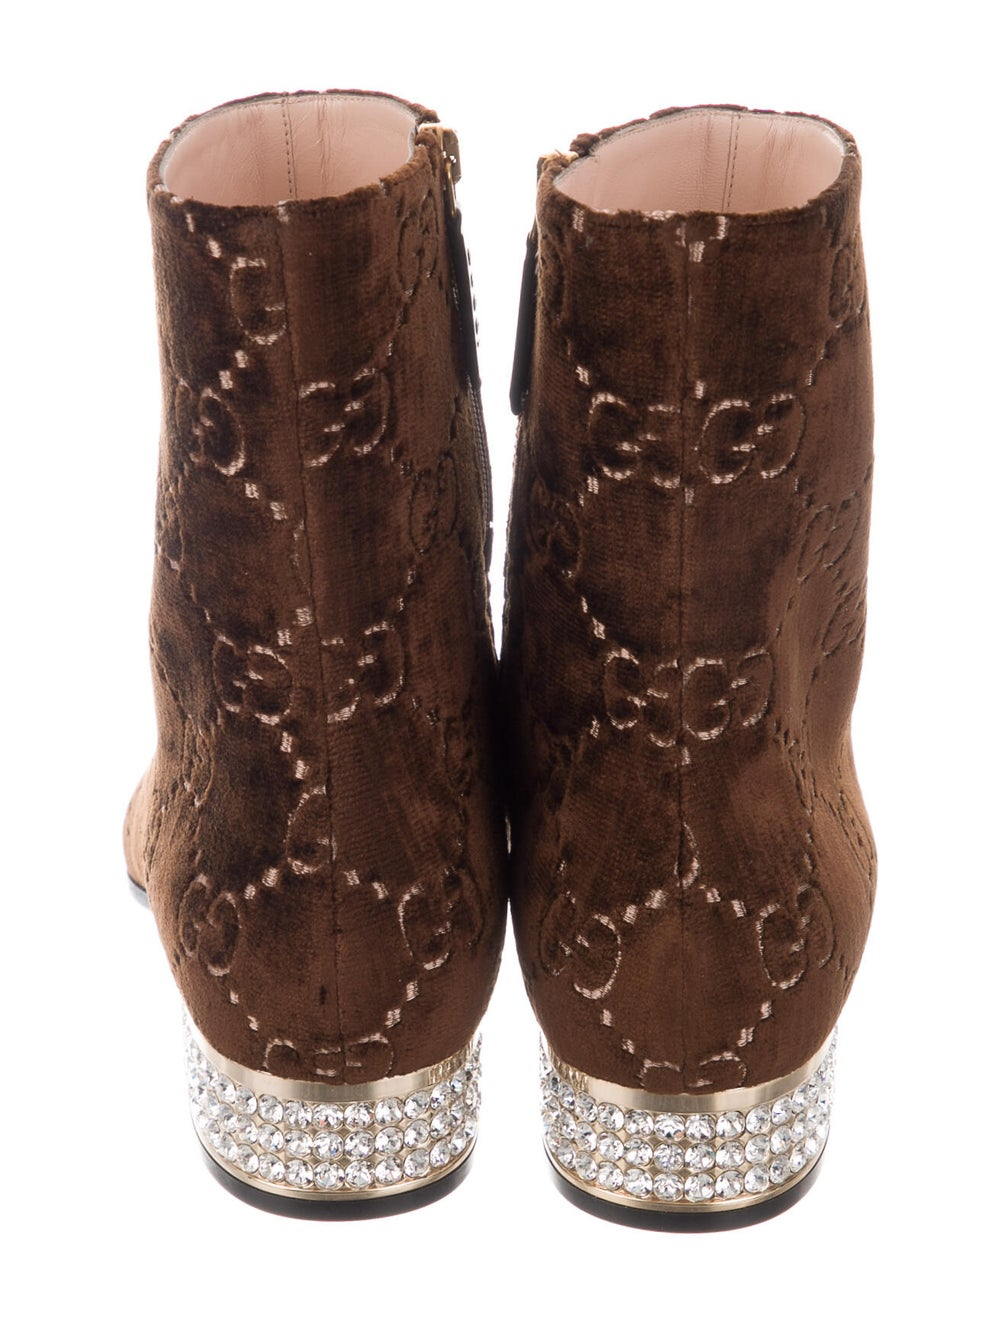 Gucci Horsebit Accent Patterned Boots Brown - image 4